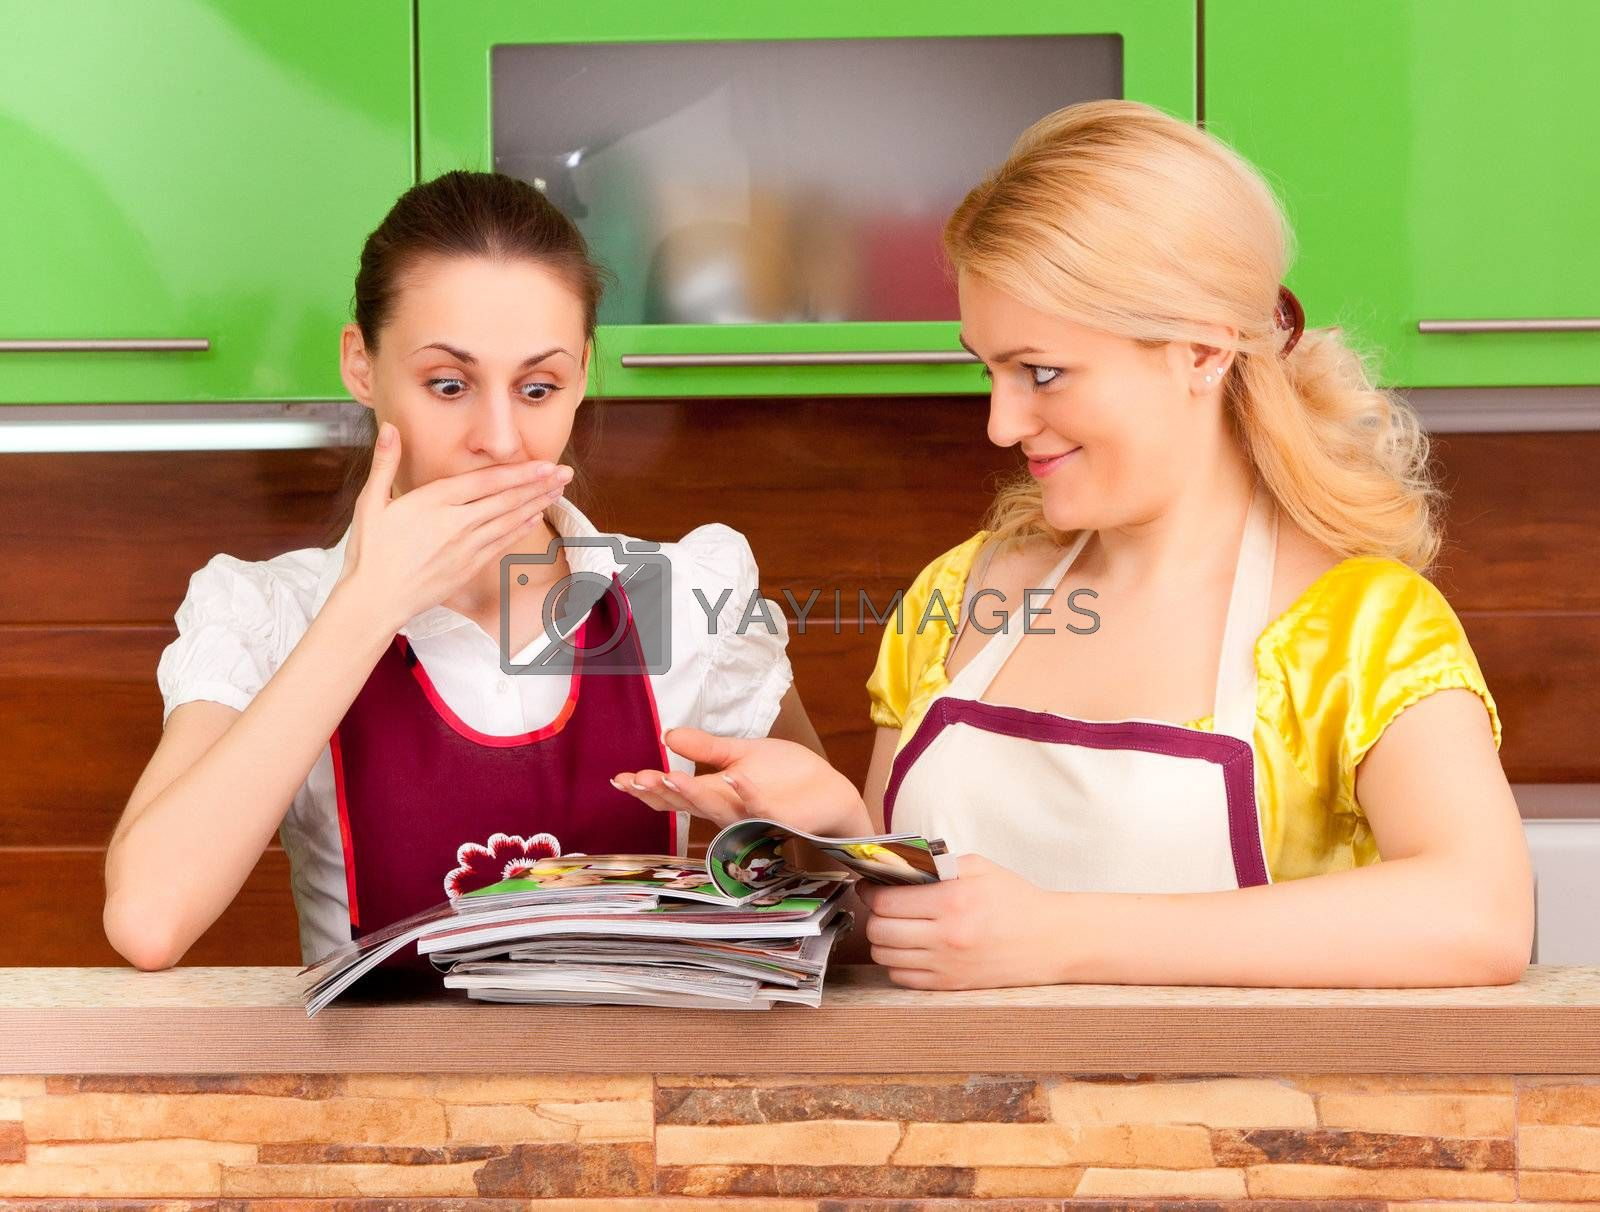 Two young women discuss fashion magazines in the kitchen